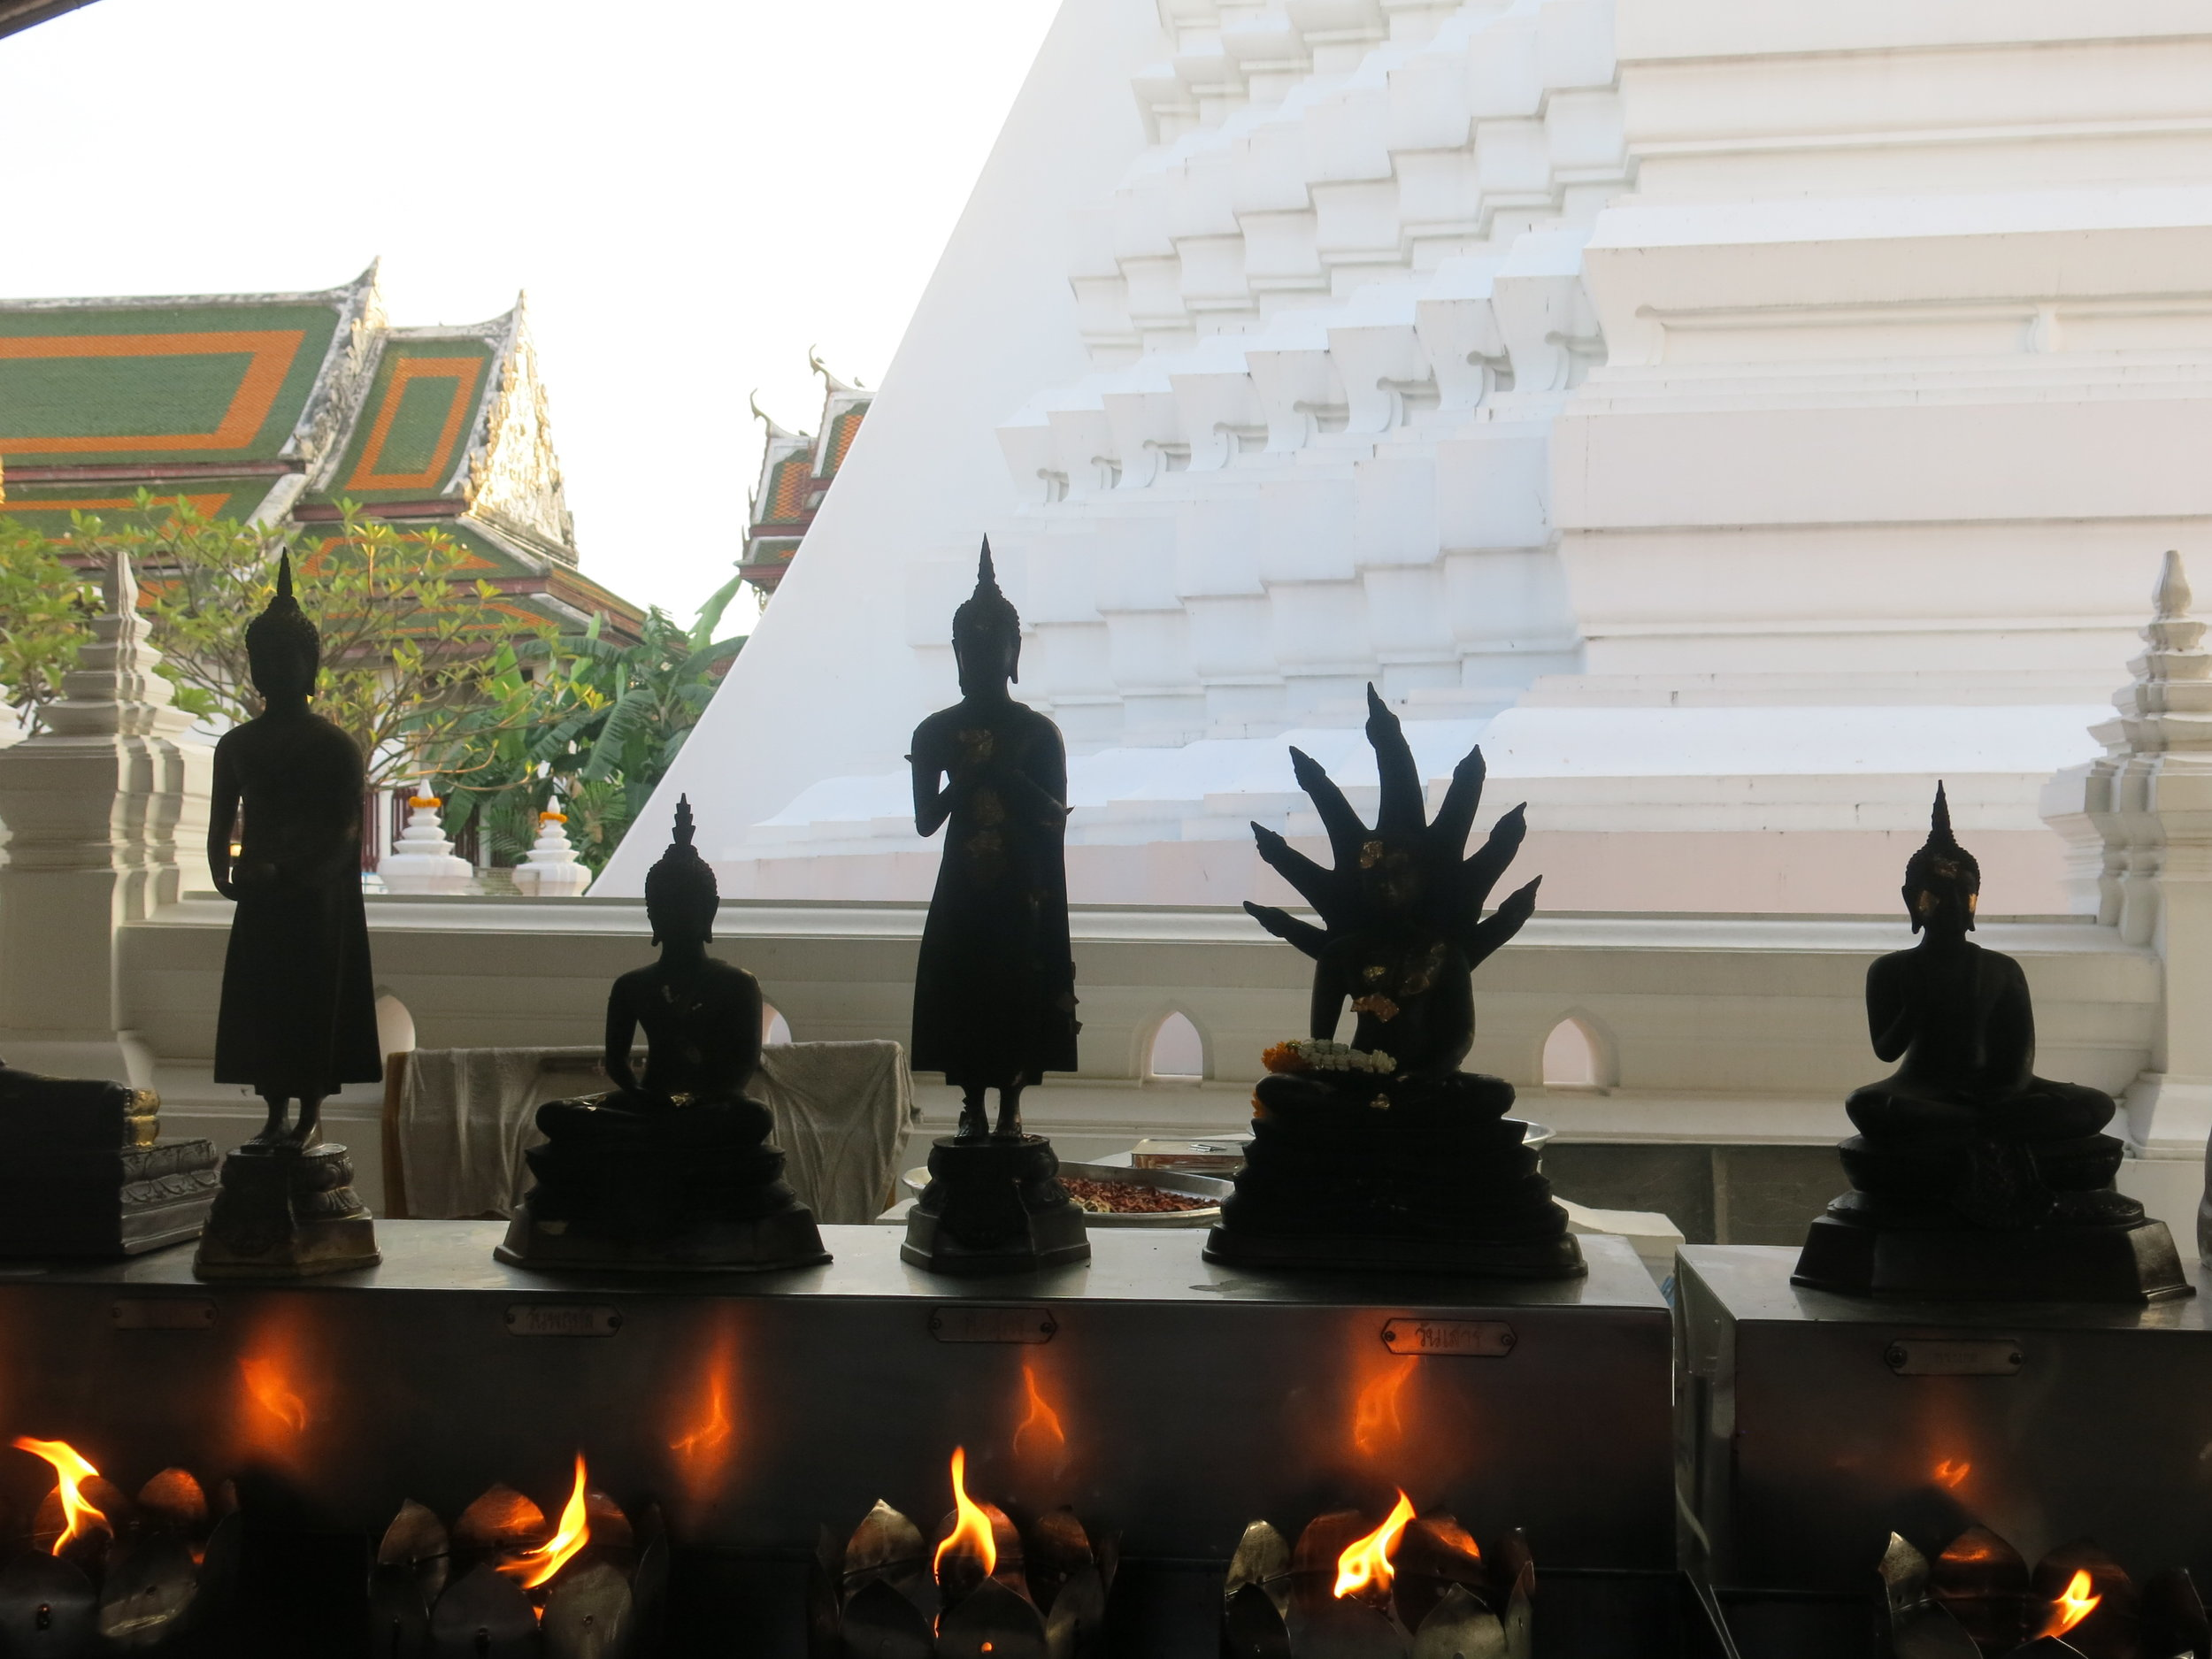 Buddhists statues at the gate of the temple